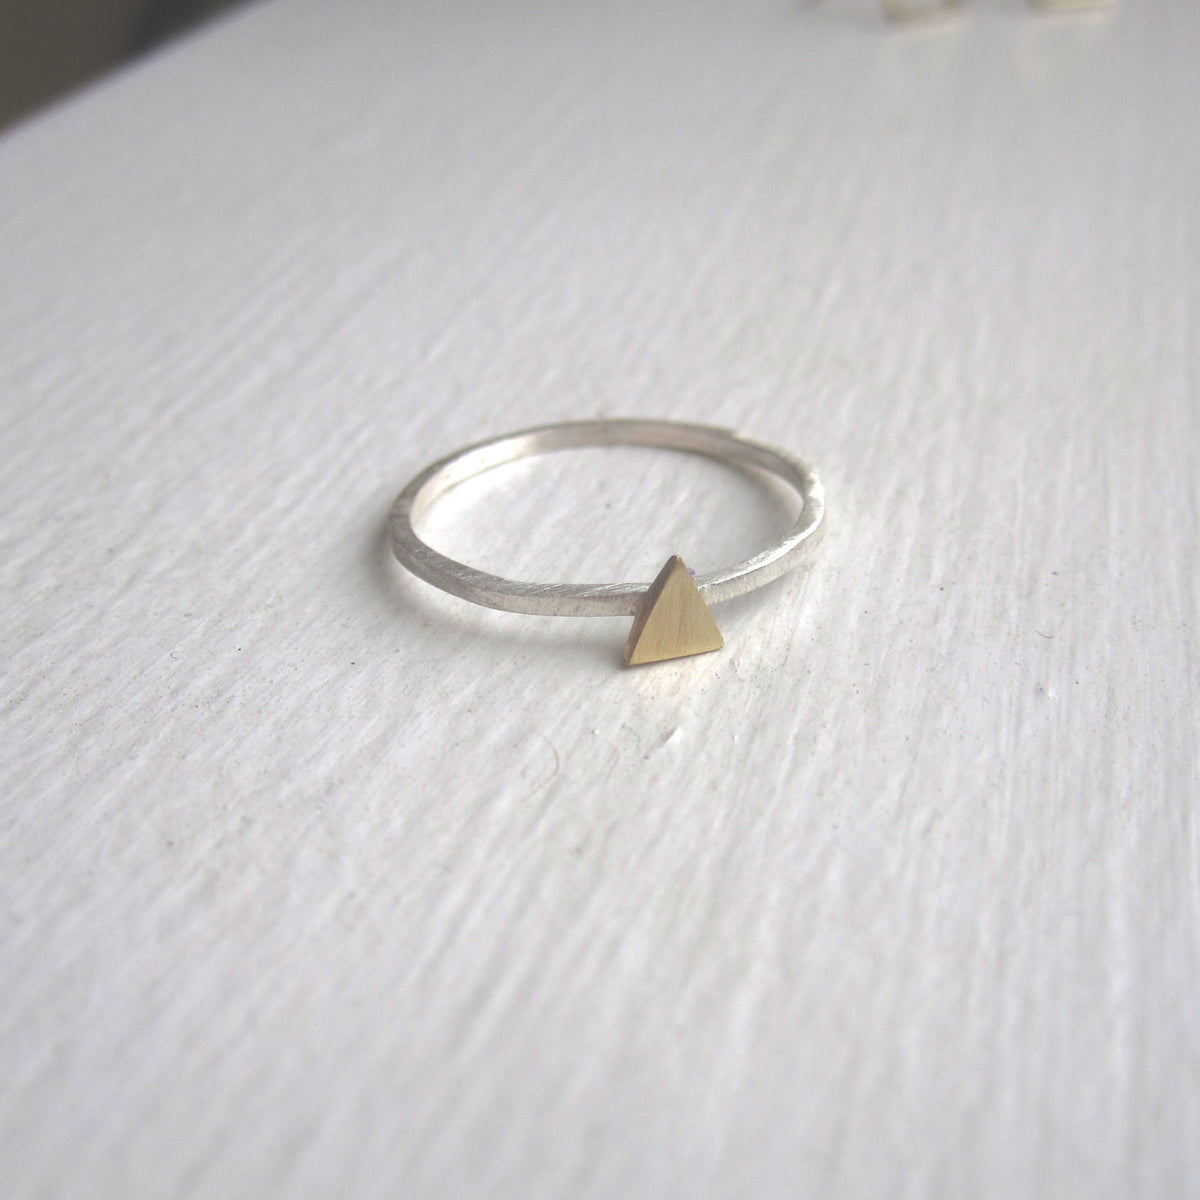 Distinctively Stylish, Hand-Made, Square Cut Stacking Ring With A Delicate Centered Triangle - 0131 - Virginia Wynne Designs